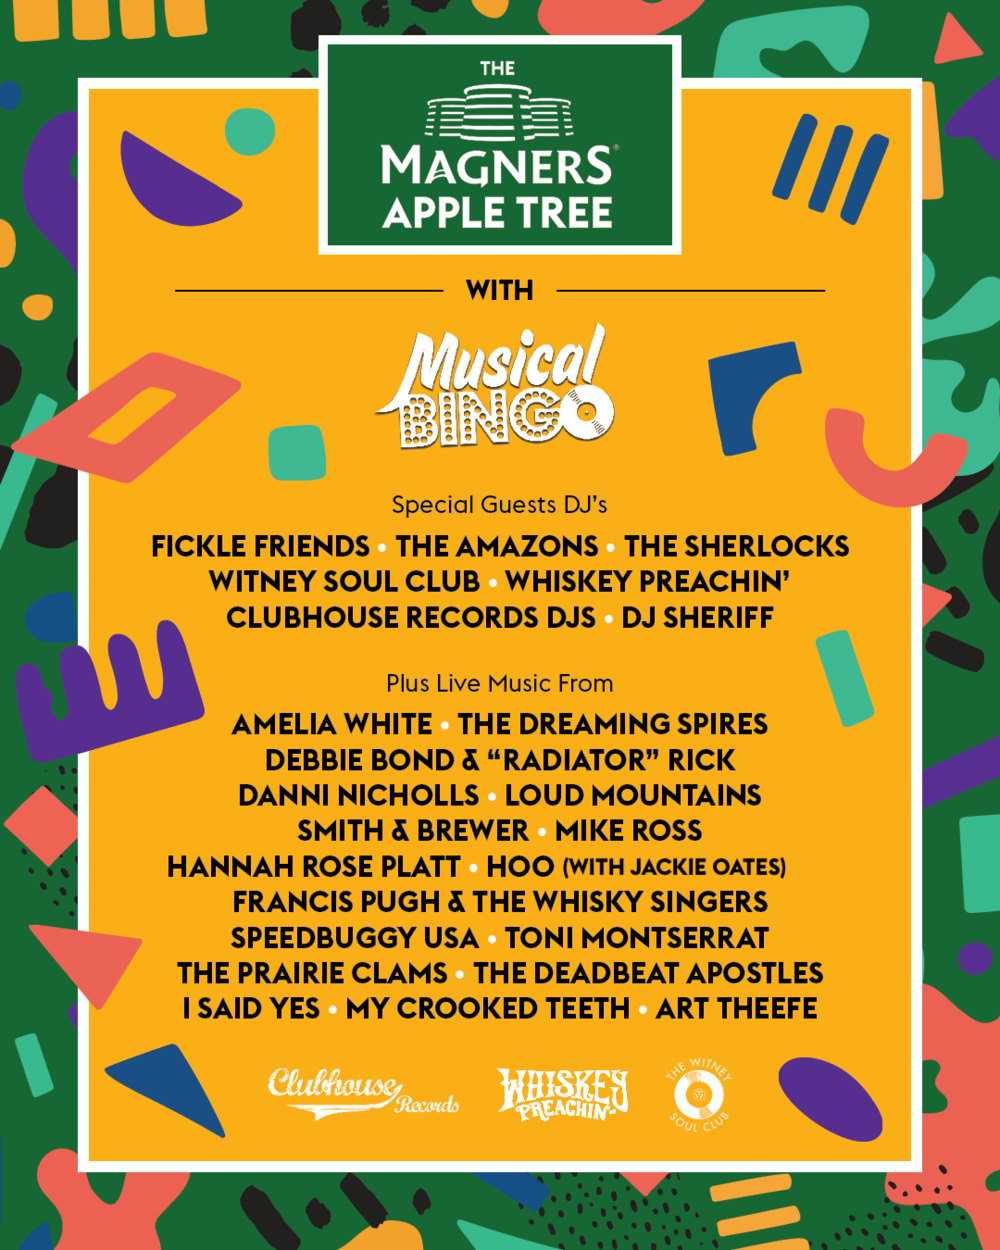 Truck-Festival-2018-Magners-Apple-Tree.png